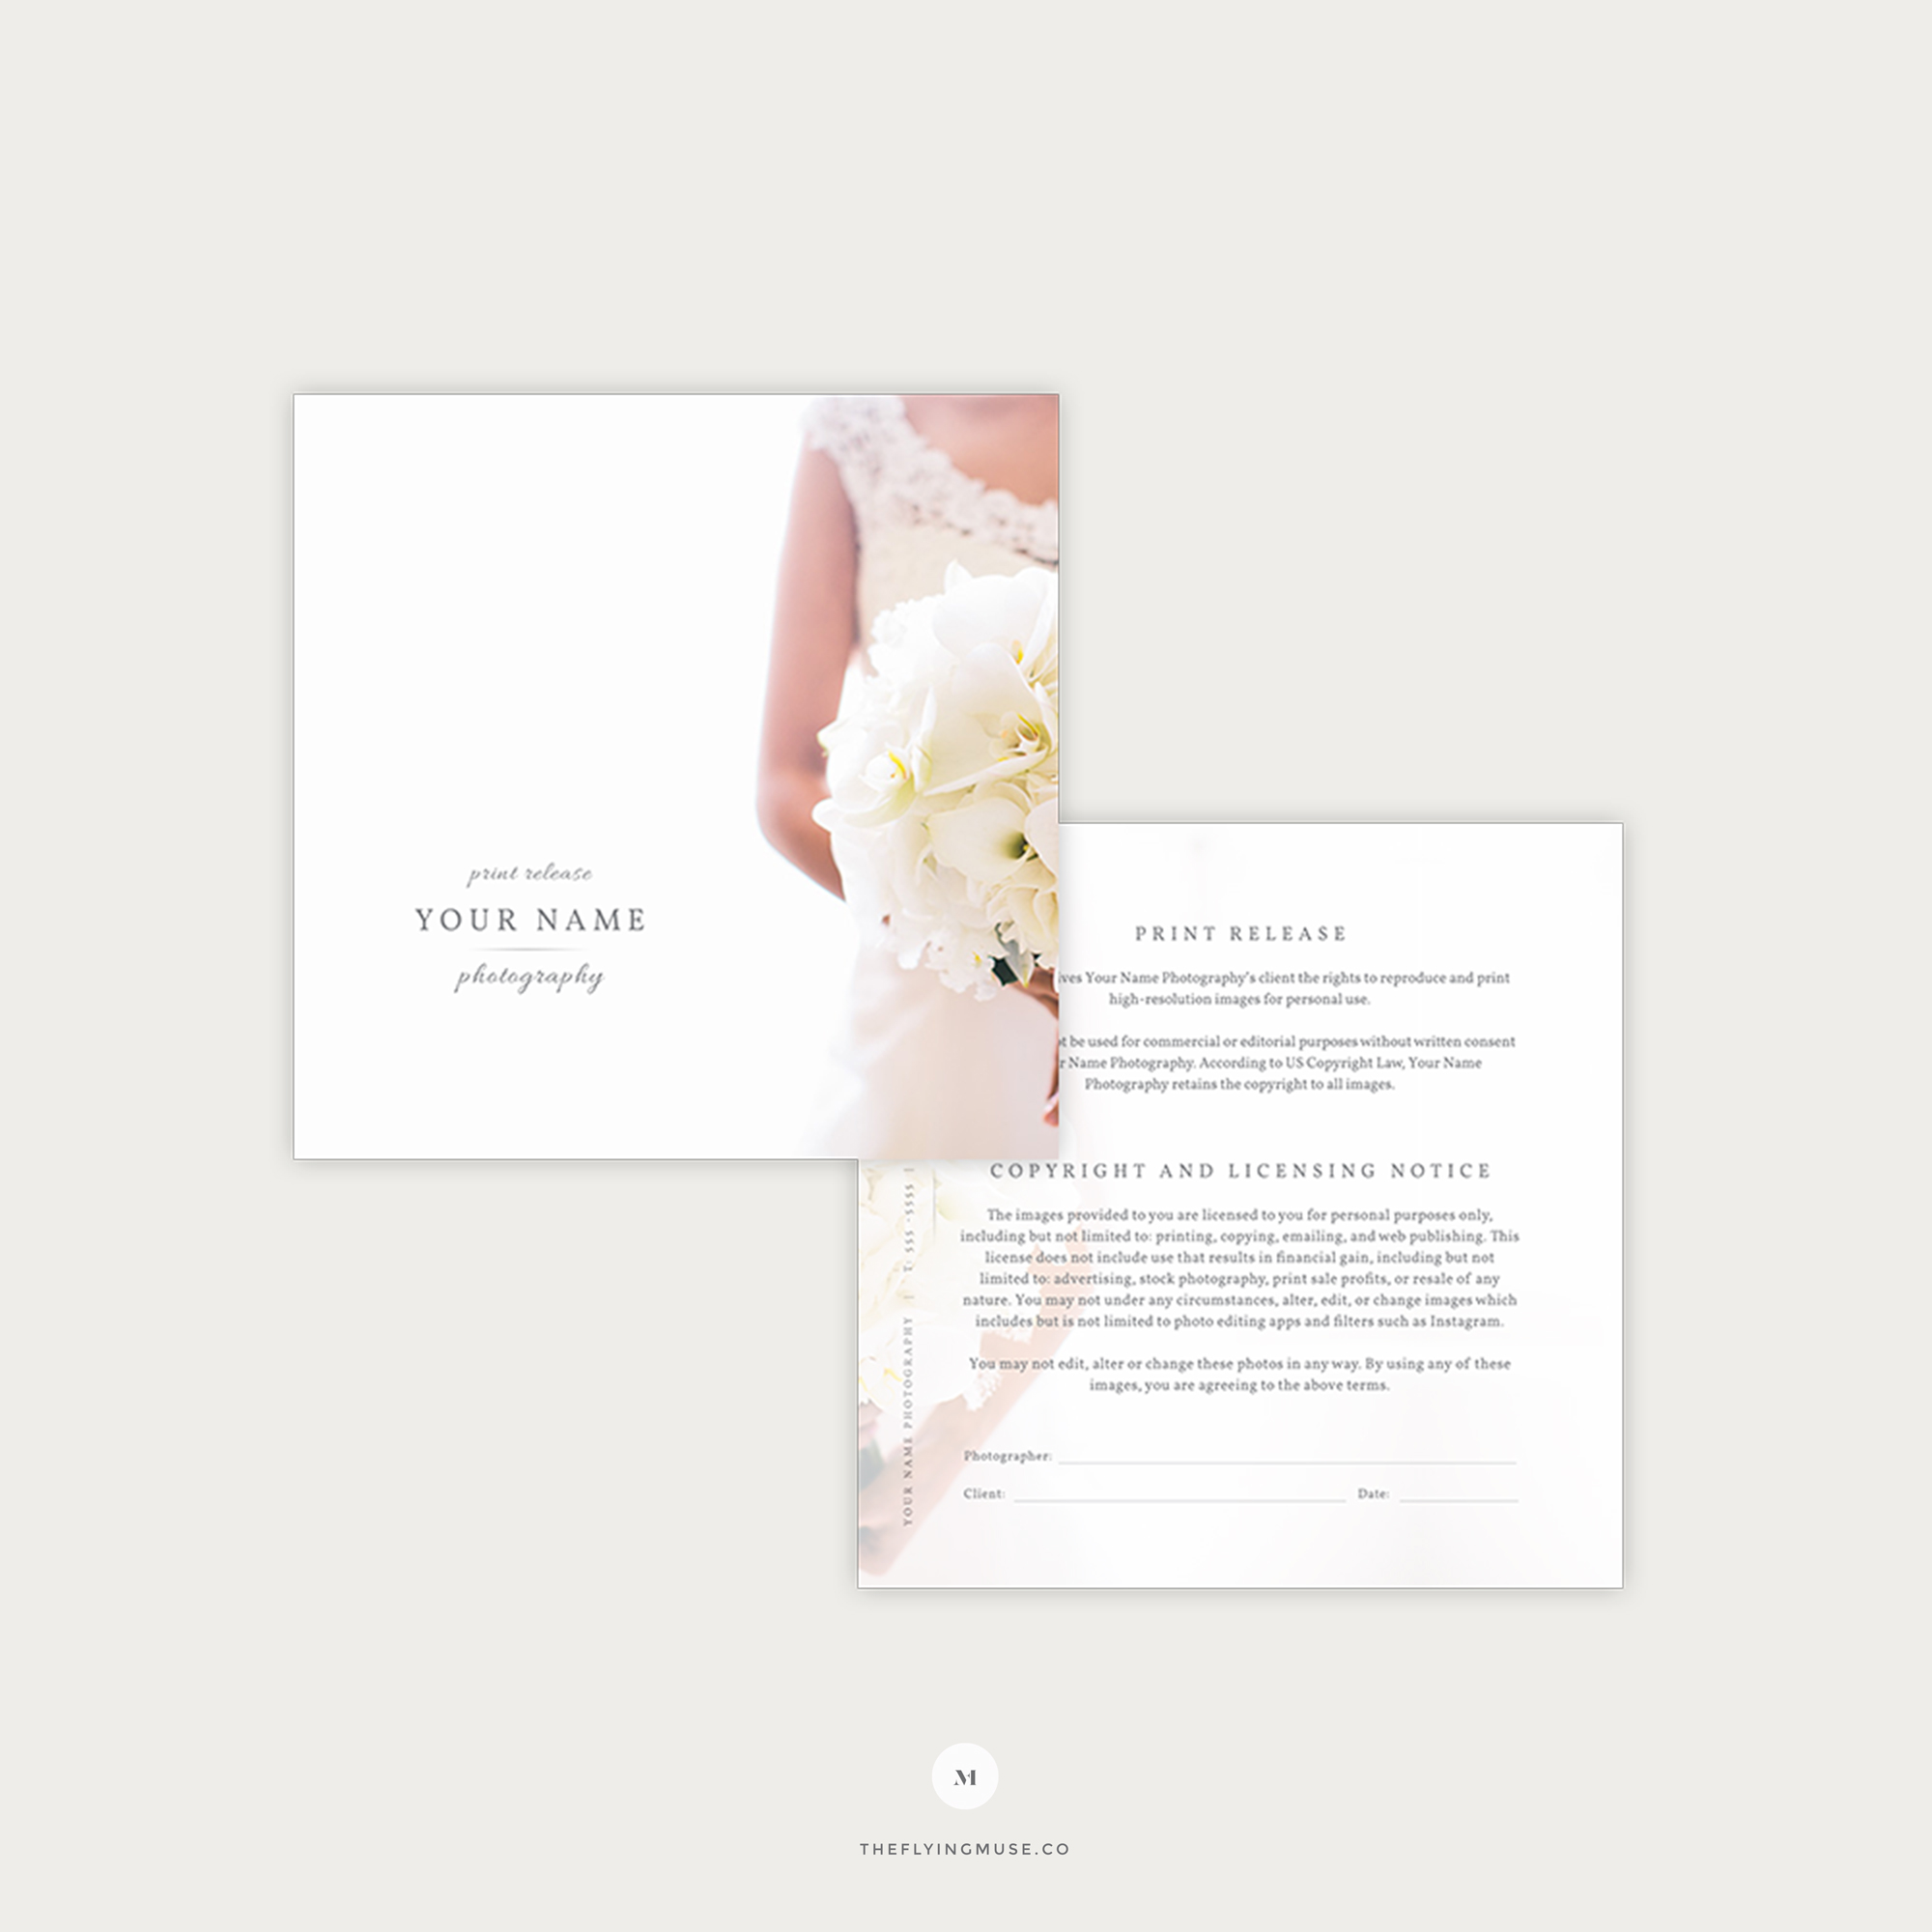 Elegant Photography Print Release Form